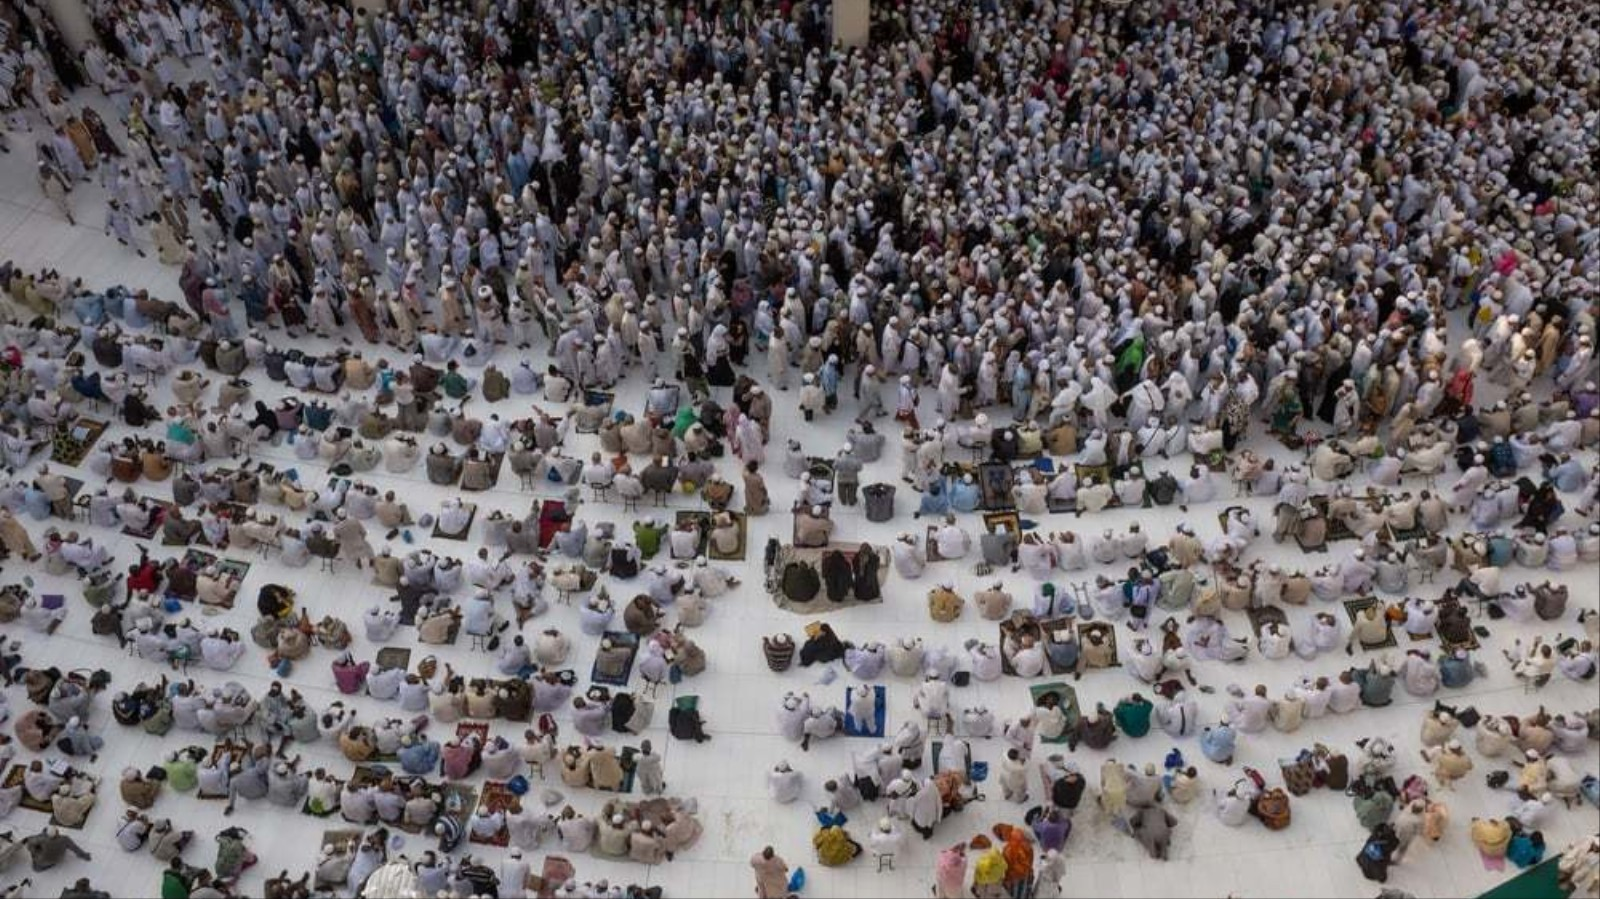 Intimate Photos from Mecca During One of the World's Largest Gatherings